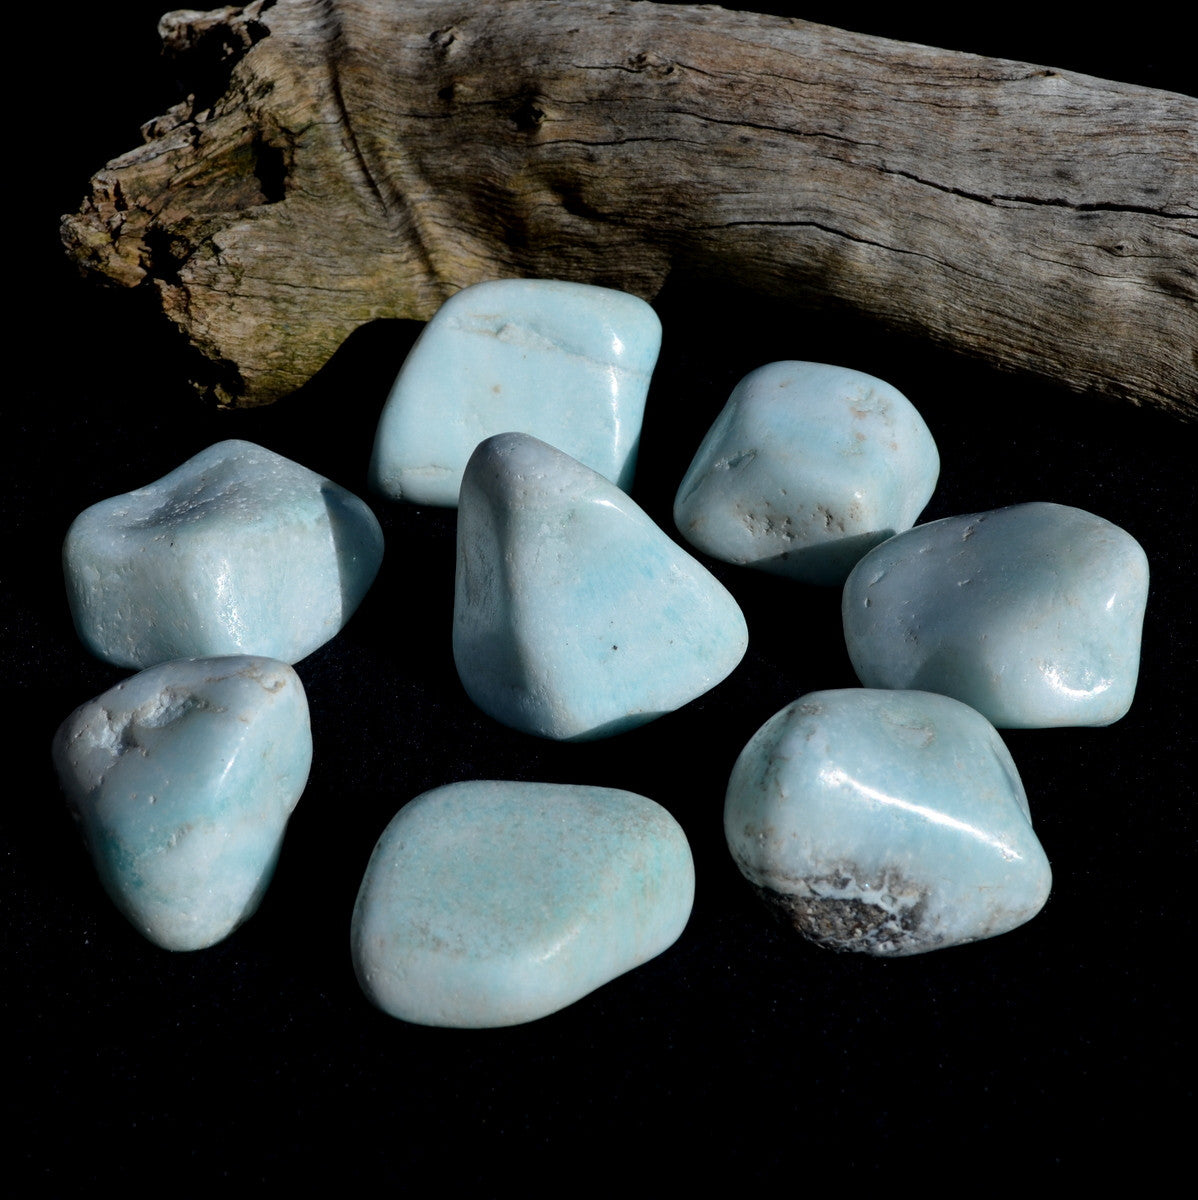 Blue Smithsonite Extra Large Tumbles - Psychic Connections Healing Calming - Buy now at Illiom Crystals - Now with Afterpay